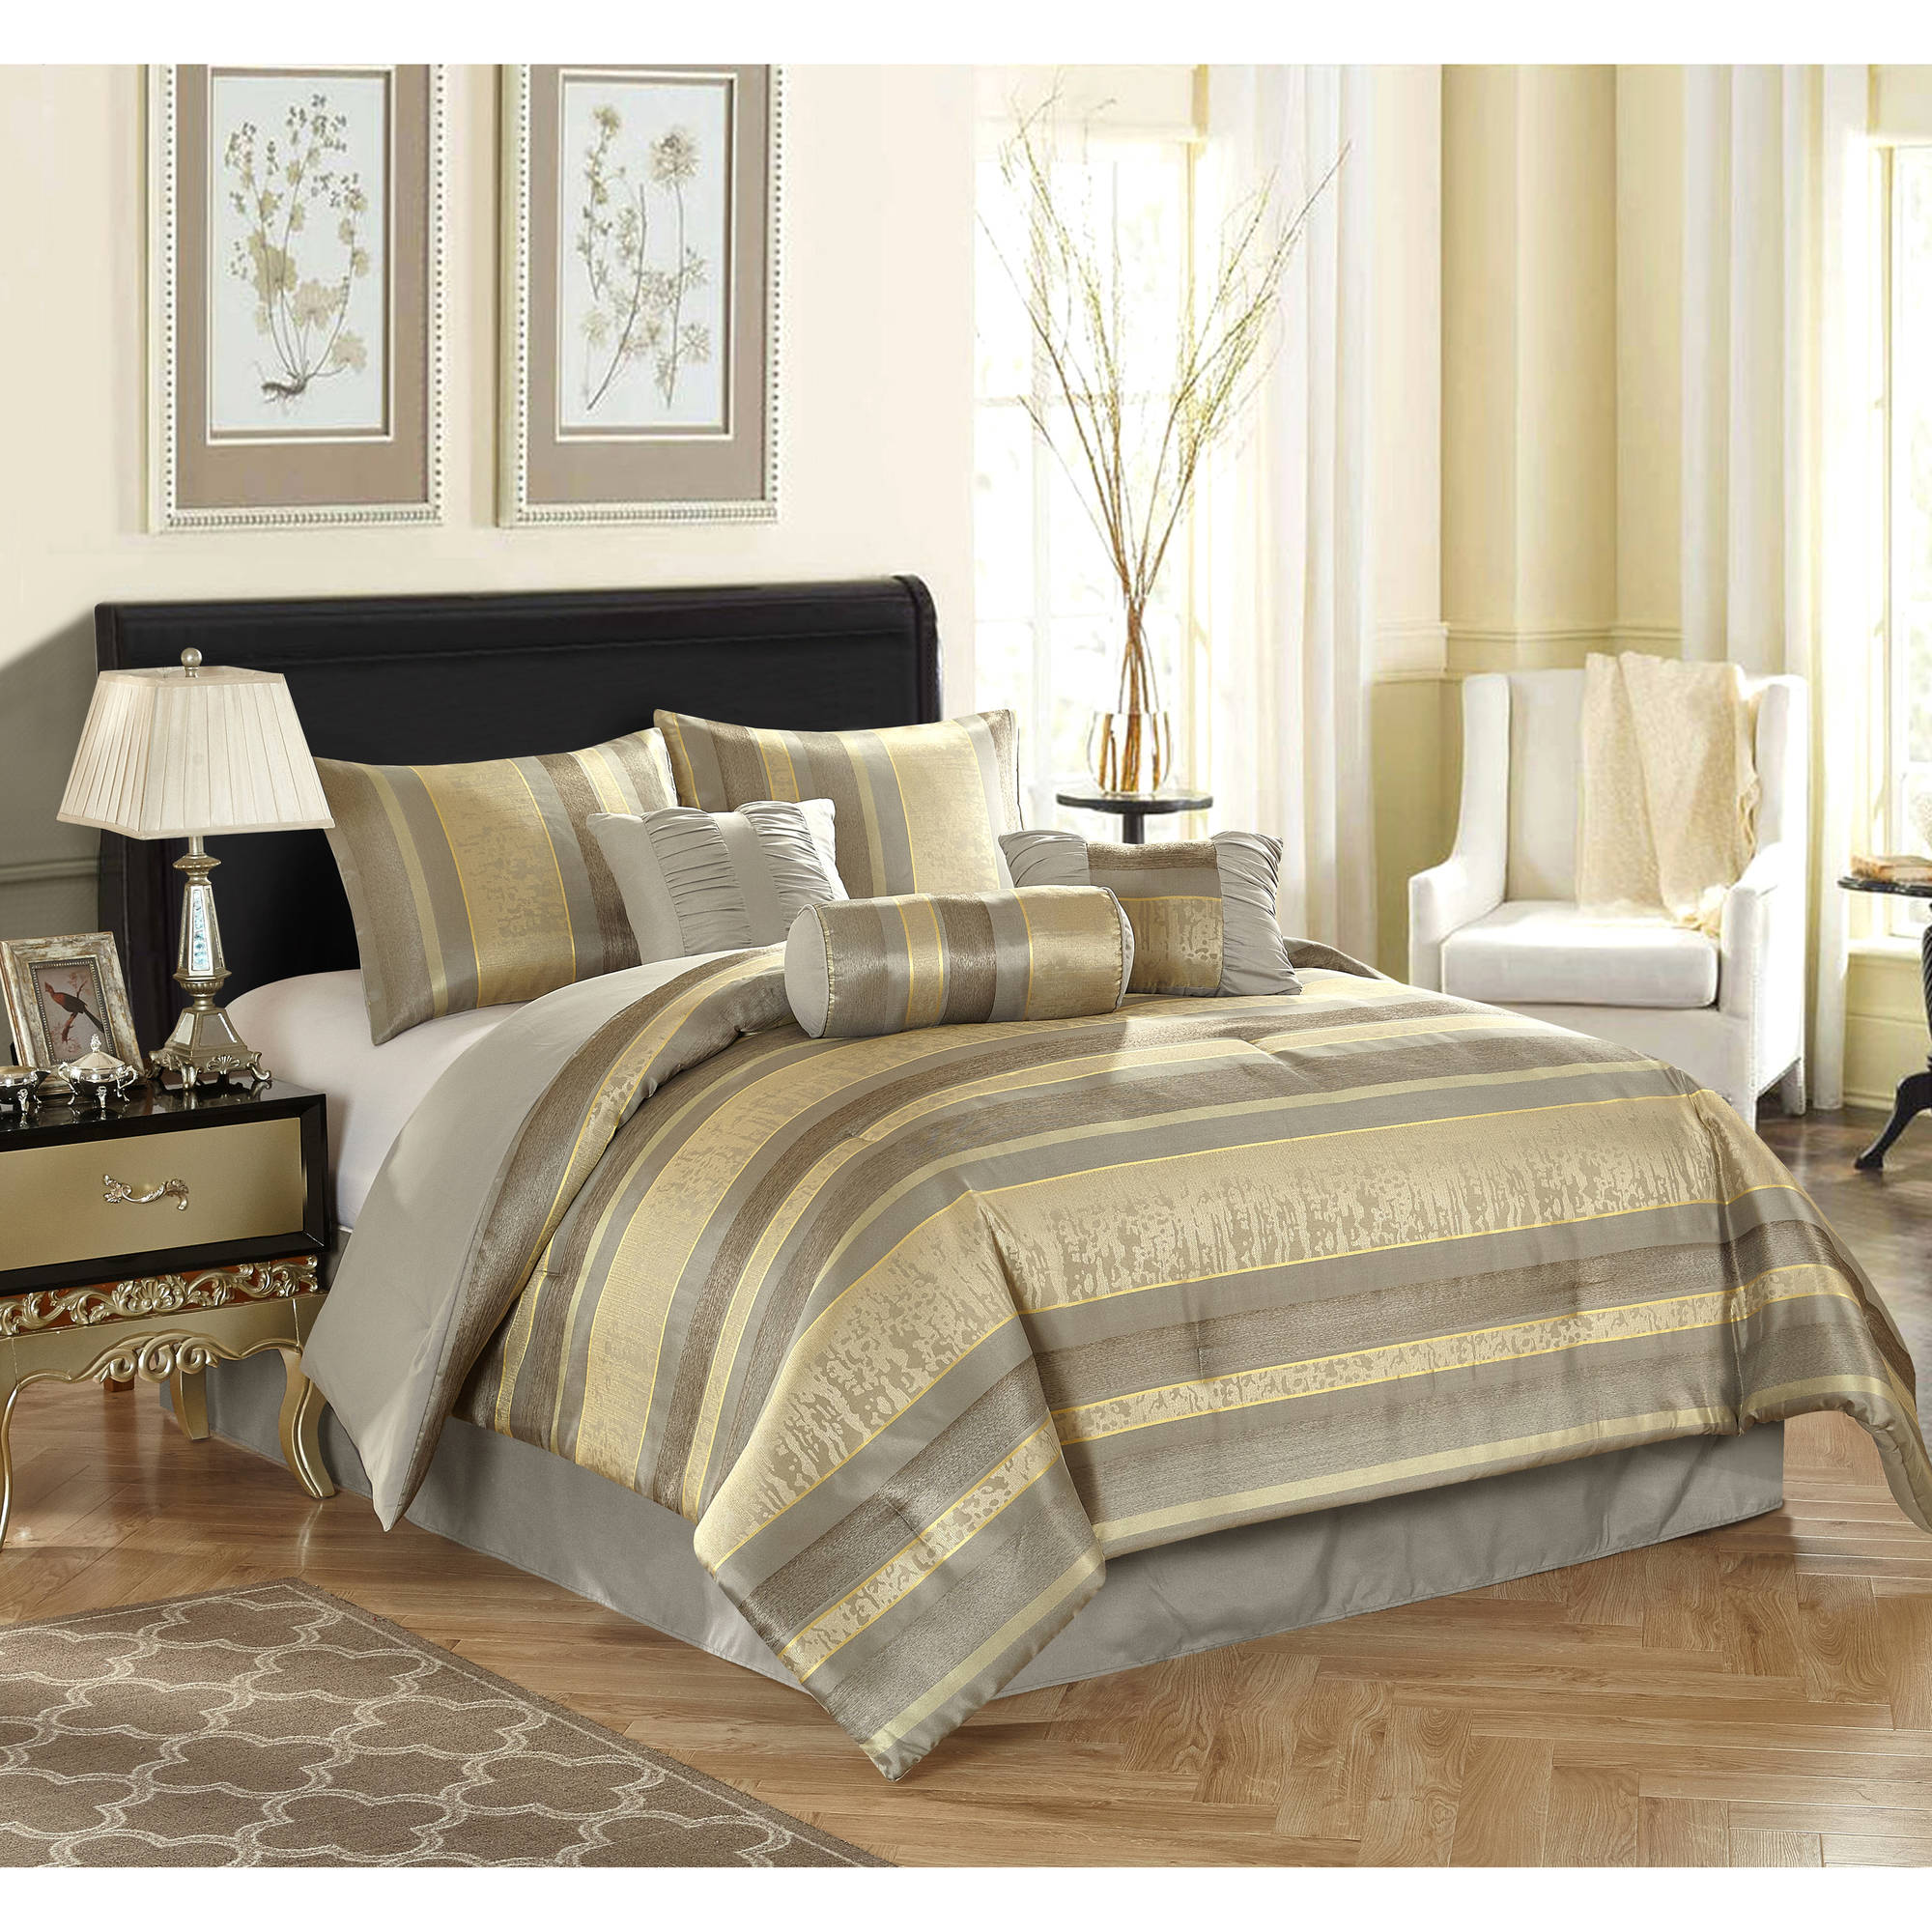 Cheetah Print Bed Set Queen Size | Queen Size Bedding Sets | Queen Size Bed In A Bag Sets